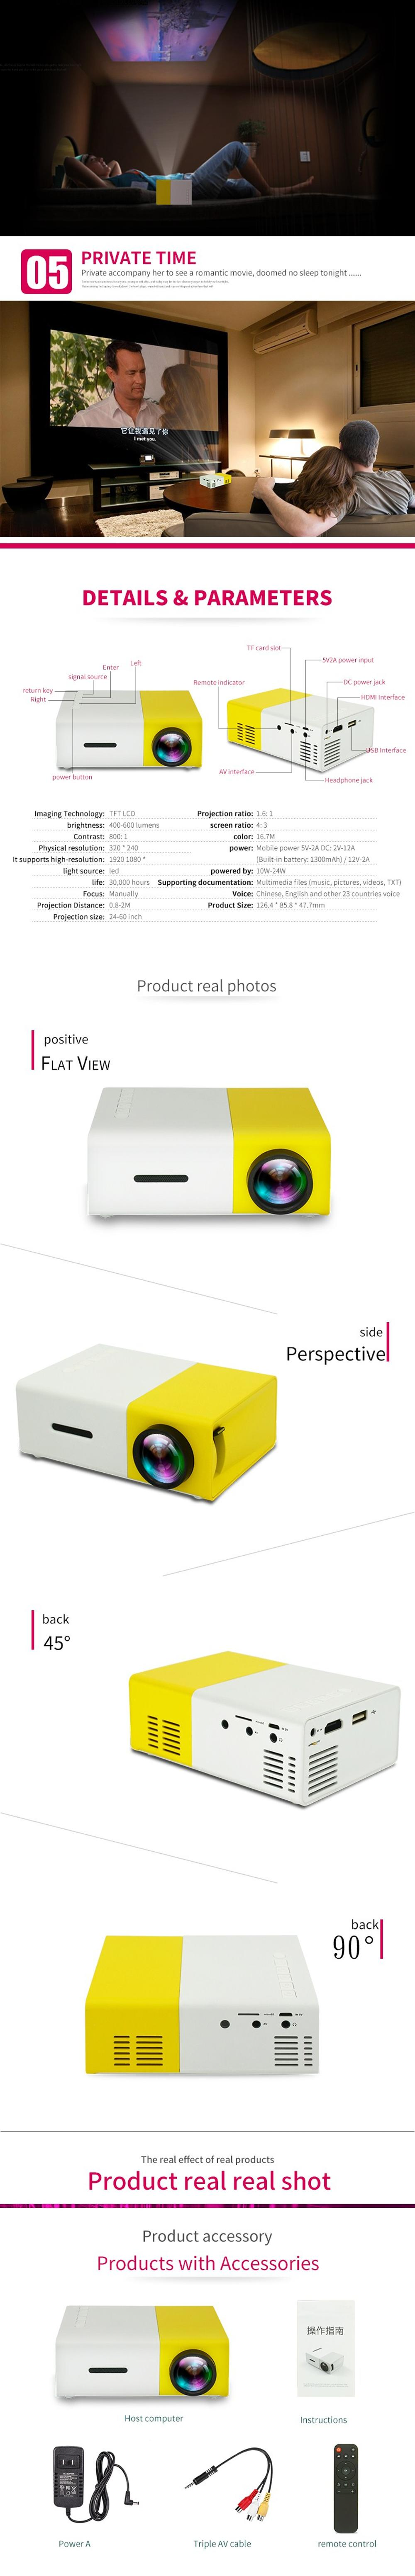 YG300 Mini Portable LED Projector with USB/SD/AV Input - International Version White/yellow/black